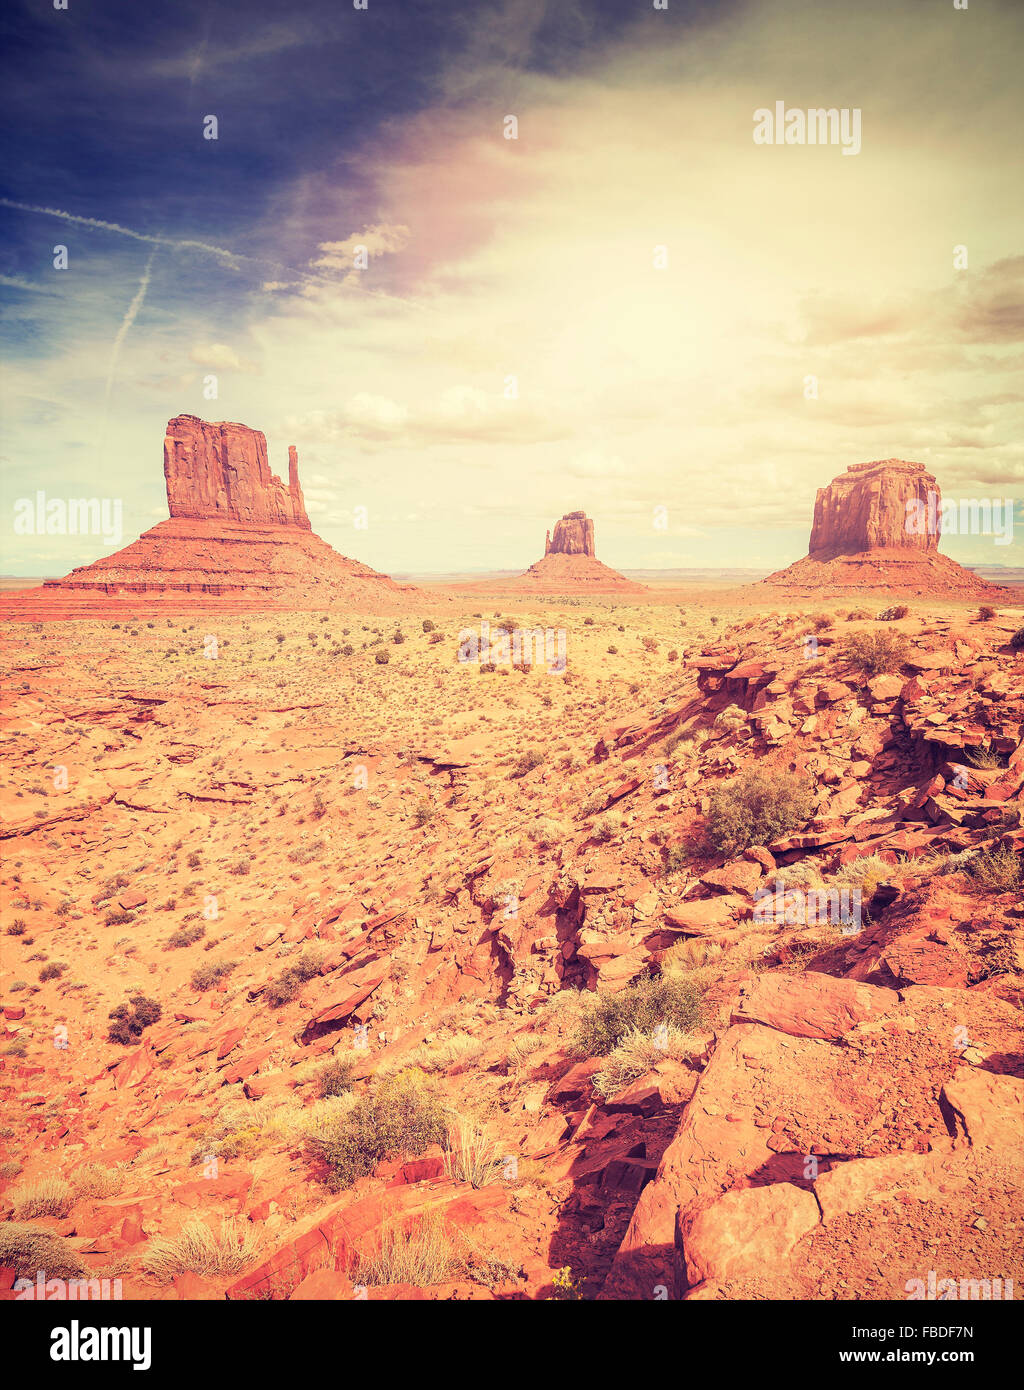 Vintage stylized picture of the Monument Valley, USA. - Stock Image